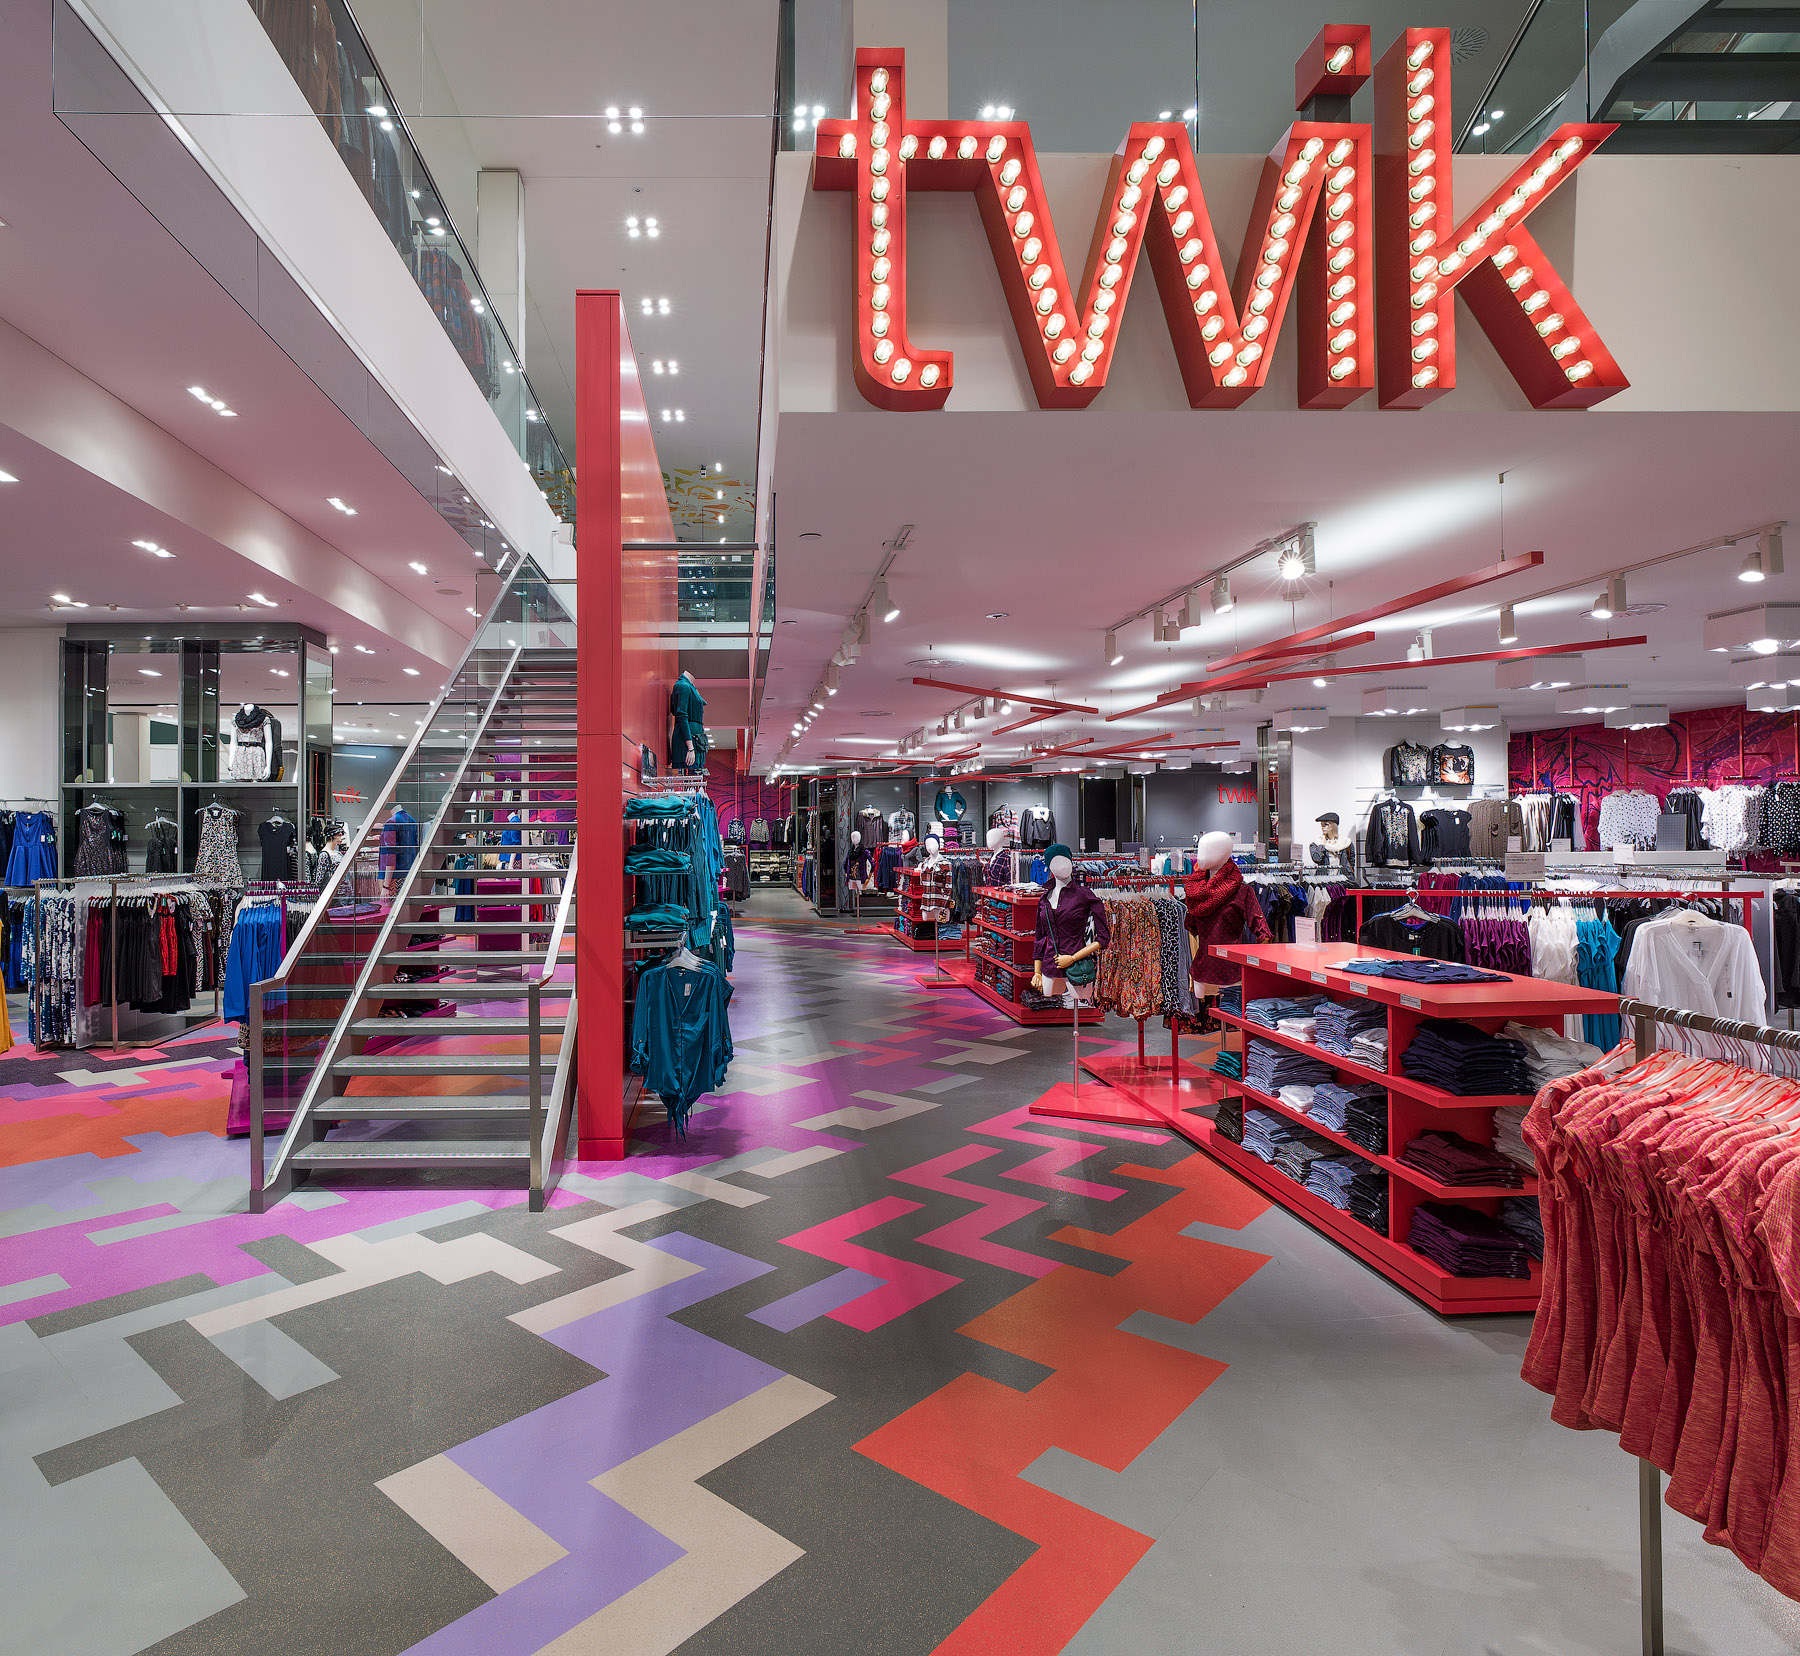 La Maison Simons Twik light up sign and patterned flooring in pink, grey, and orange